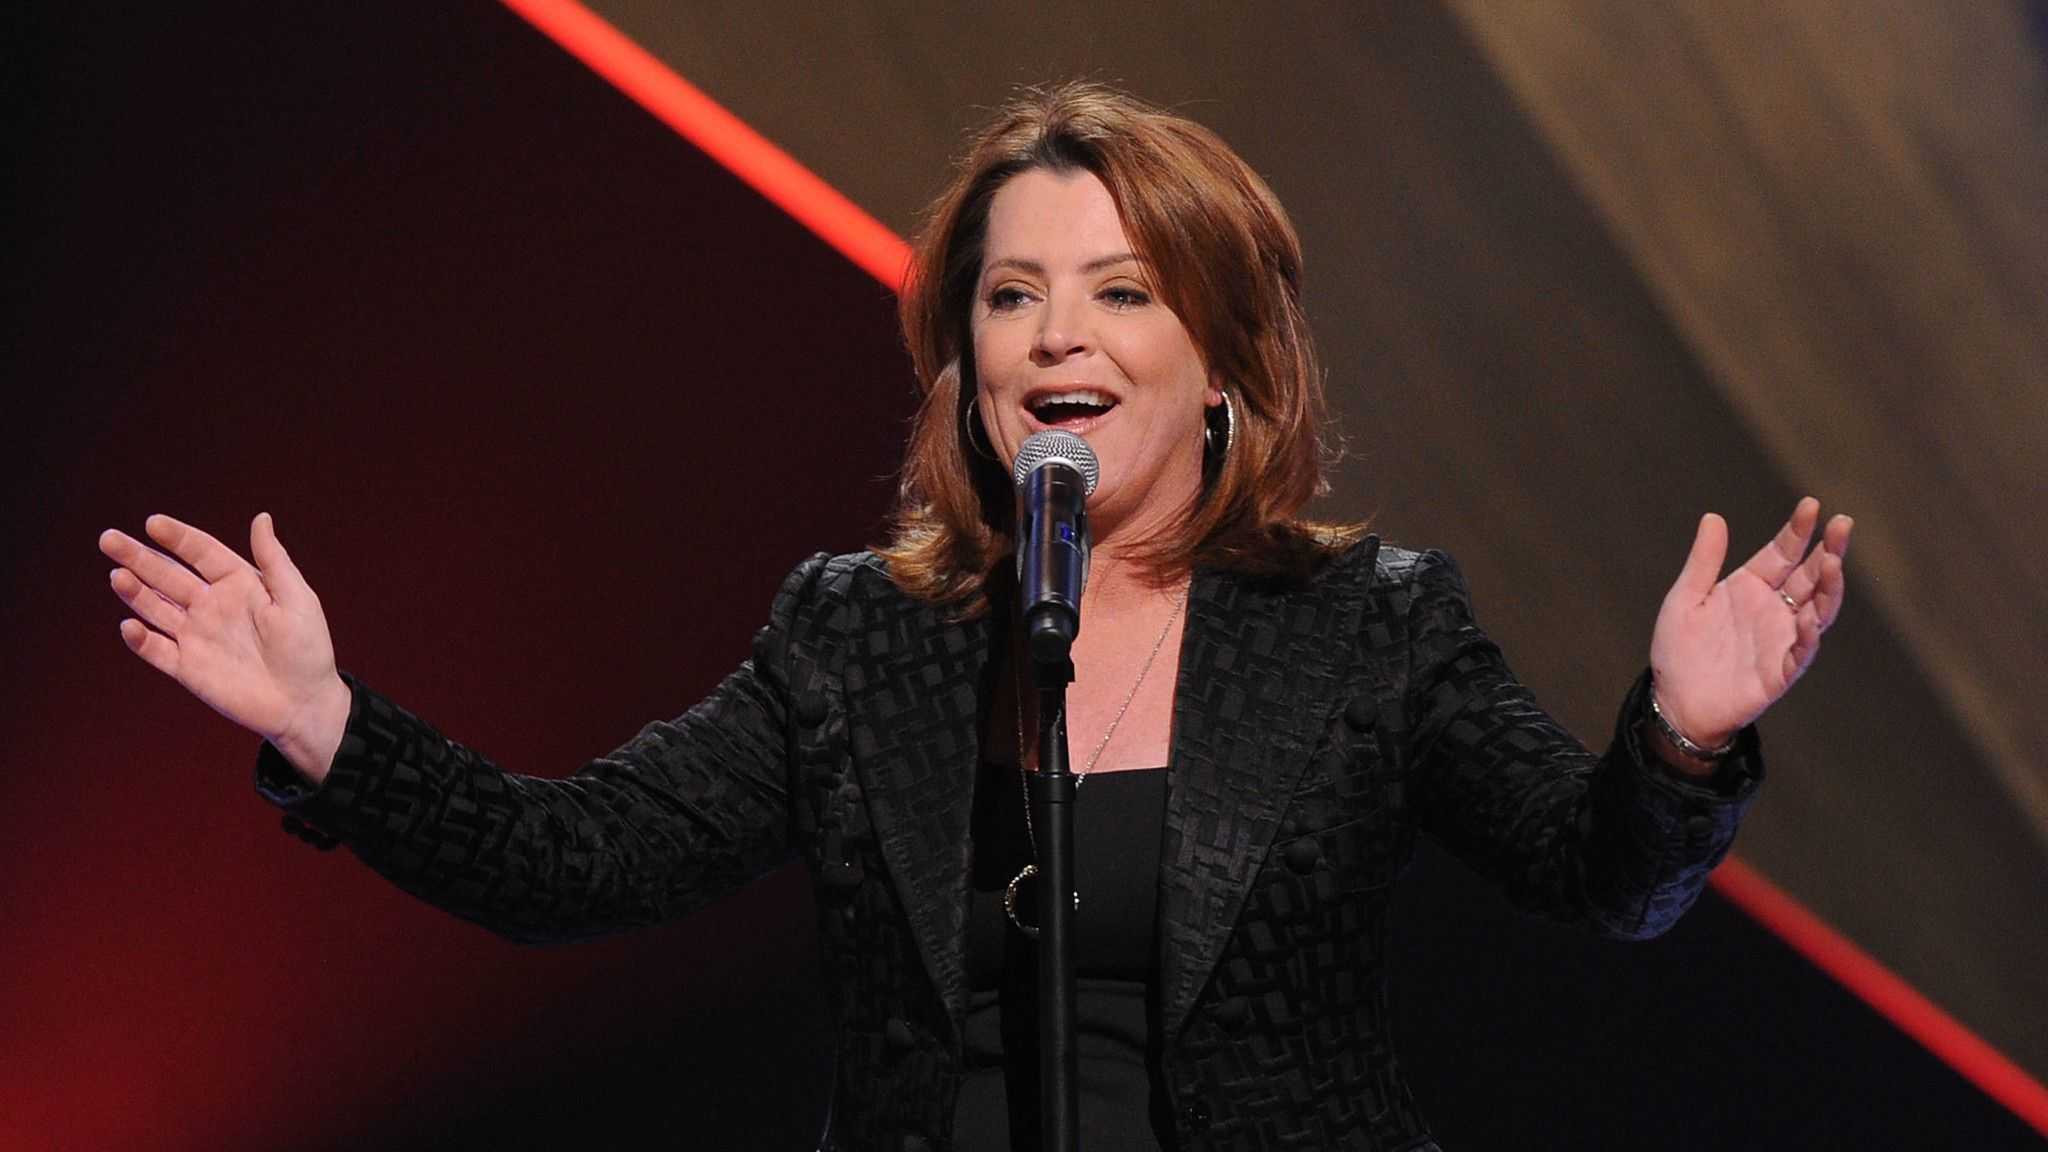 Kathleen Madigan at the Chicago Theatre: Her jokes are about prescription drugs instead of politics — if we're talking age, she's an old pro